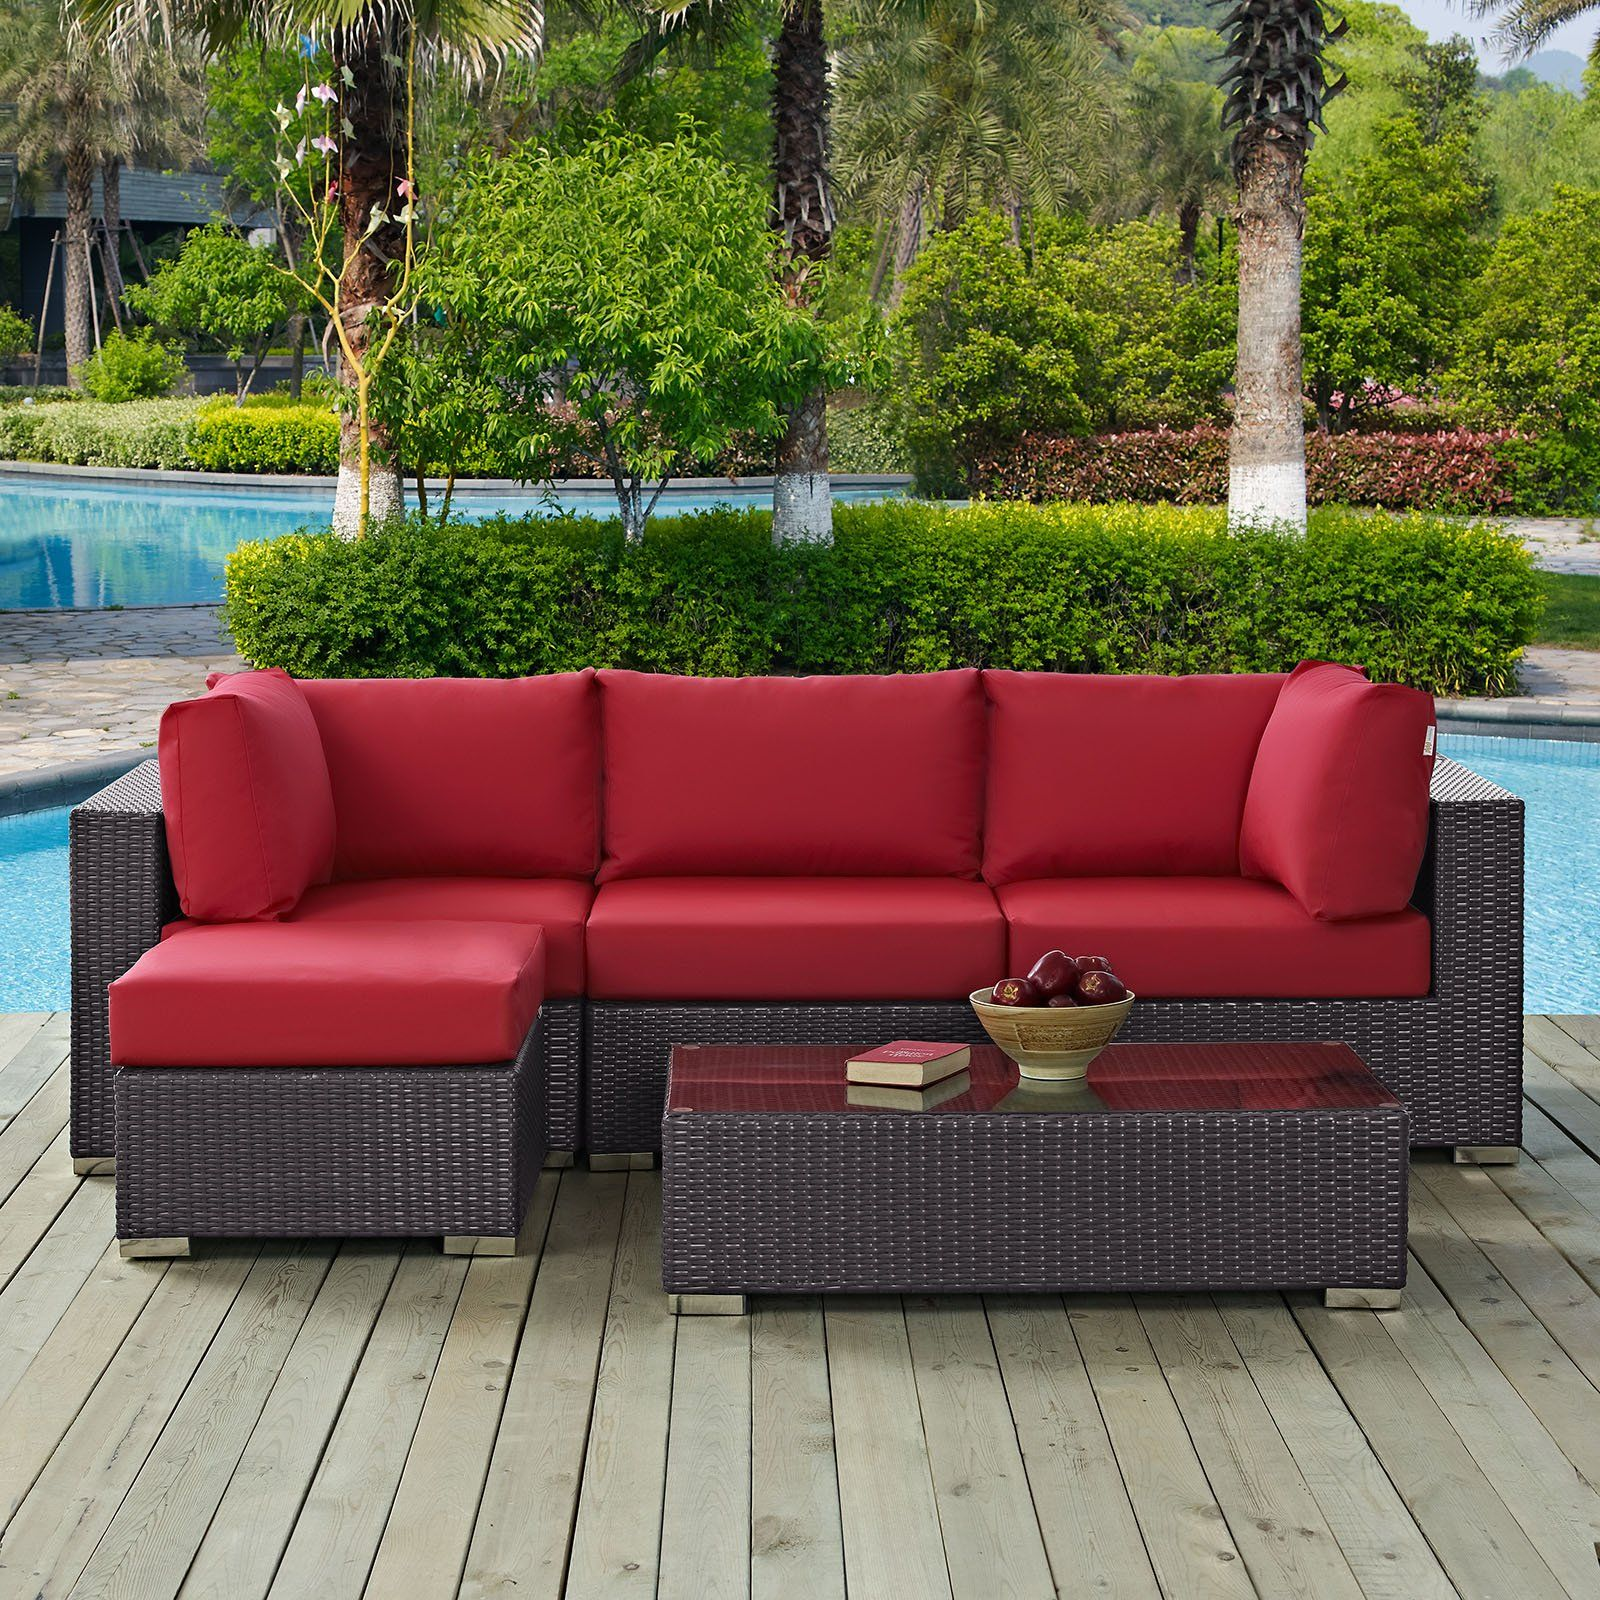 Modway Furniture Modern Convene 5 Piece Outdoor Patio Sectional Set Eei 2172 With Images Outdoor Seating Set Modern Outdoor Furniture Outdoor Patio